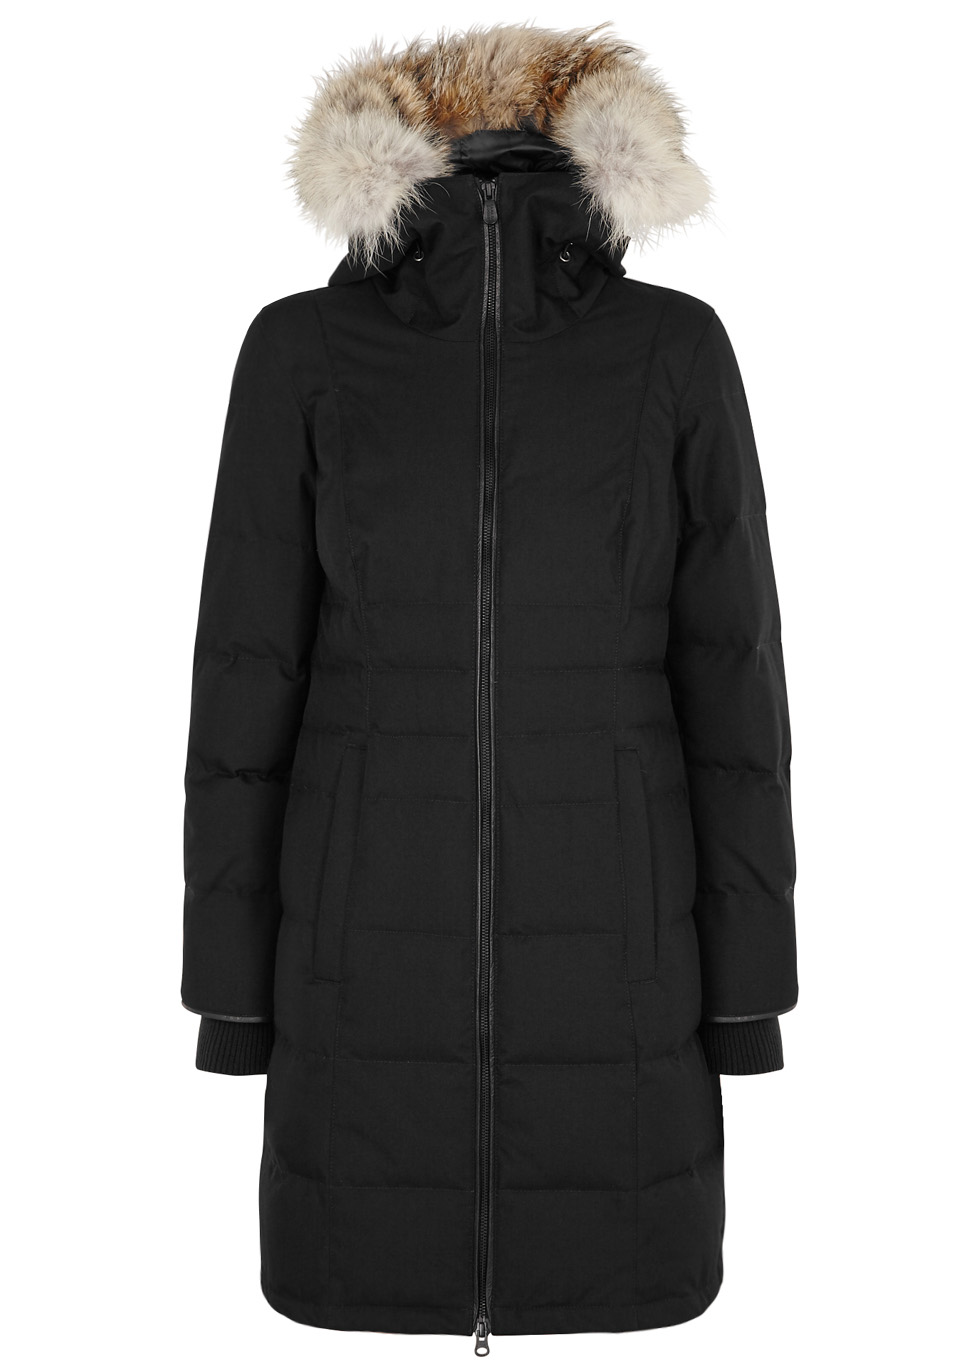 Pembina black fur-trimmed coat - Canada Goose